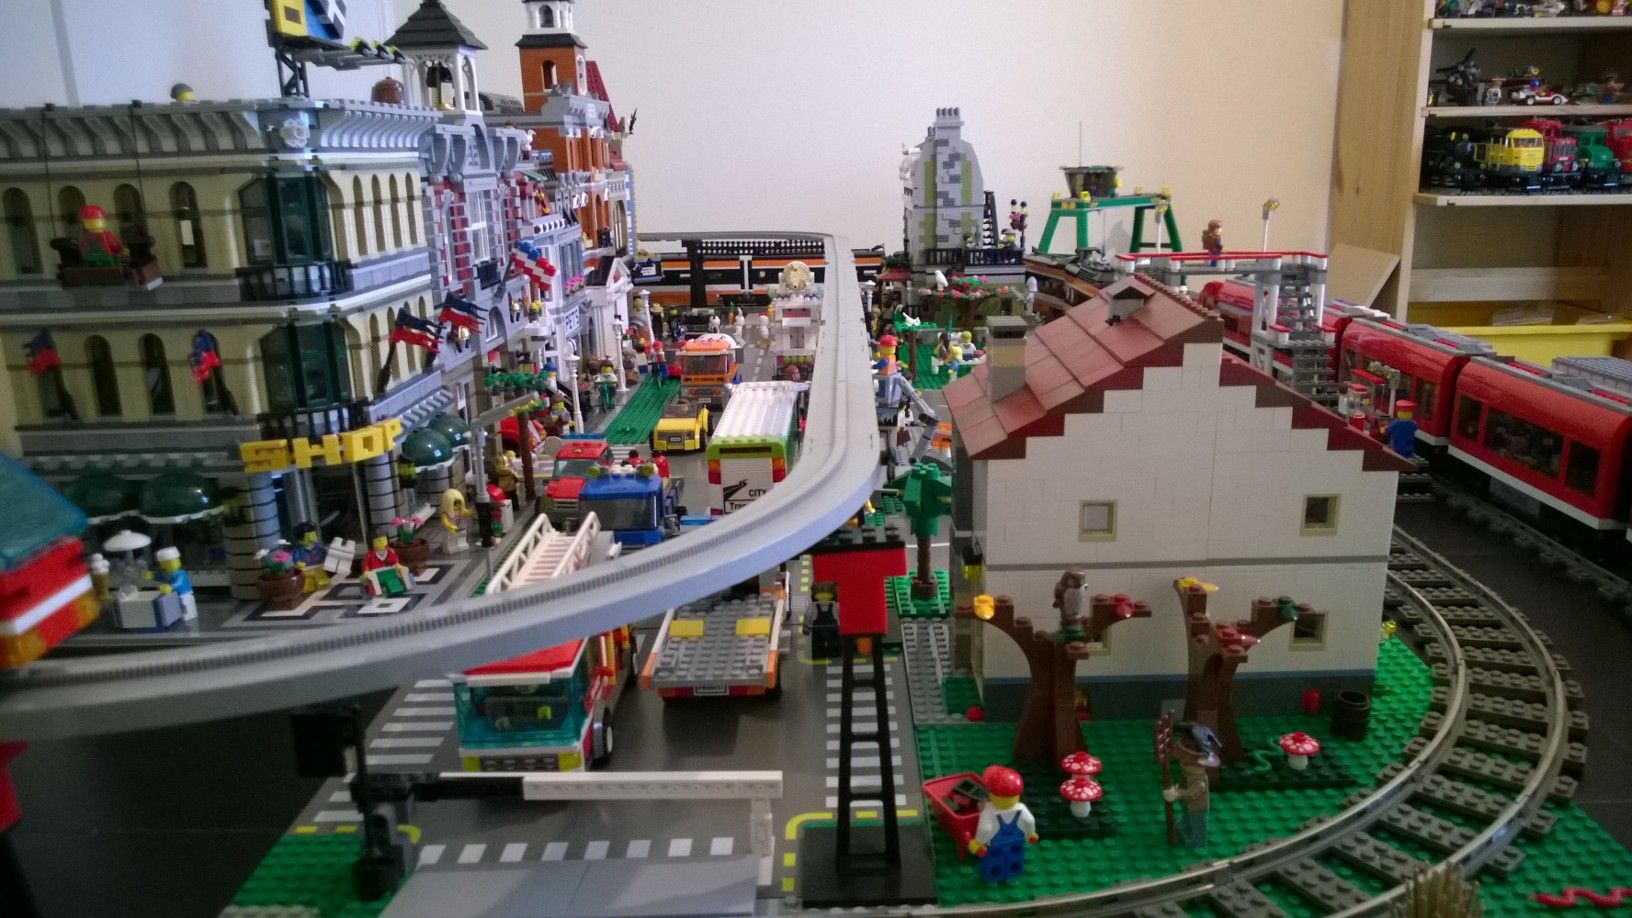 My small town and train layout - LEGO Town | Lego city ...